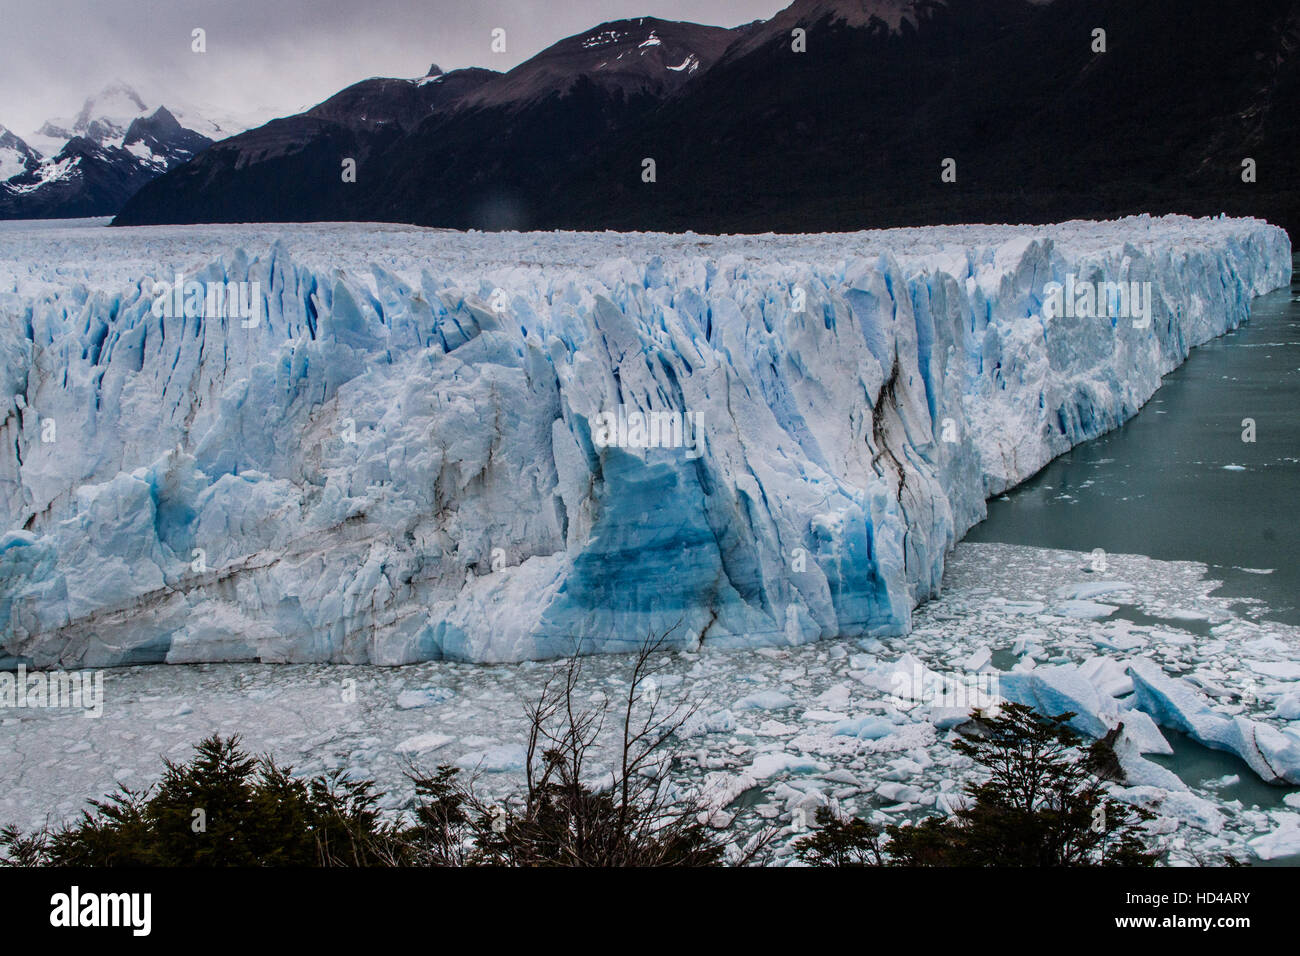 EL CALAFATE, ARG, 06.12.2016: Argentinian Perito Moreno Glacier located in the Los Glaciares National Park in southwest - Stock Image